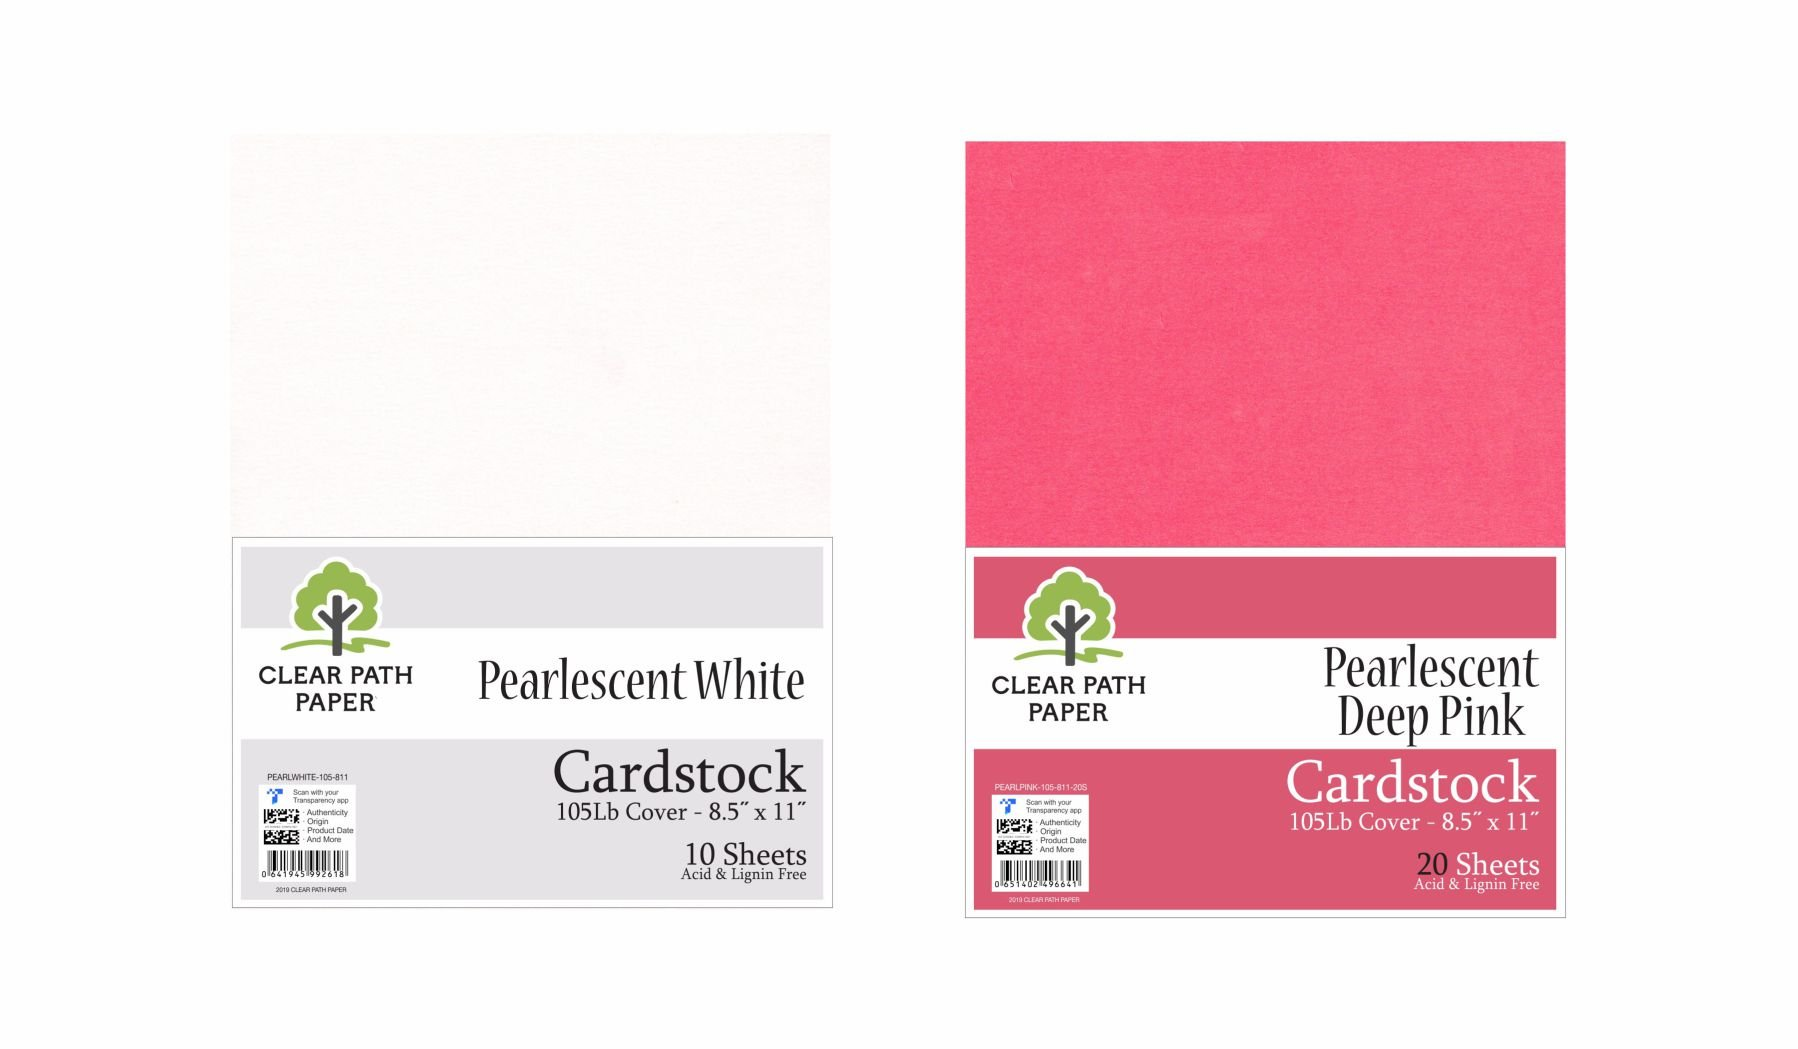 Image of an Amazon bundle of Clear Path Paper cardstock in Pearlescent Deep Pink and Pearlescent White